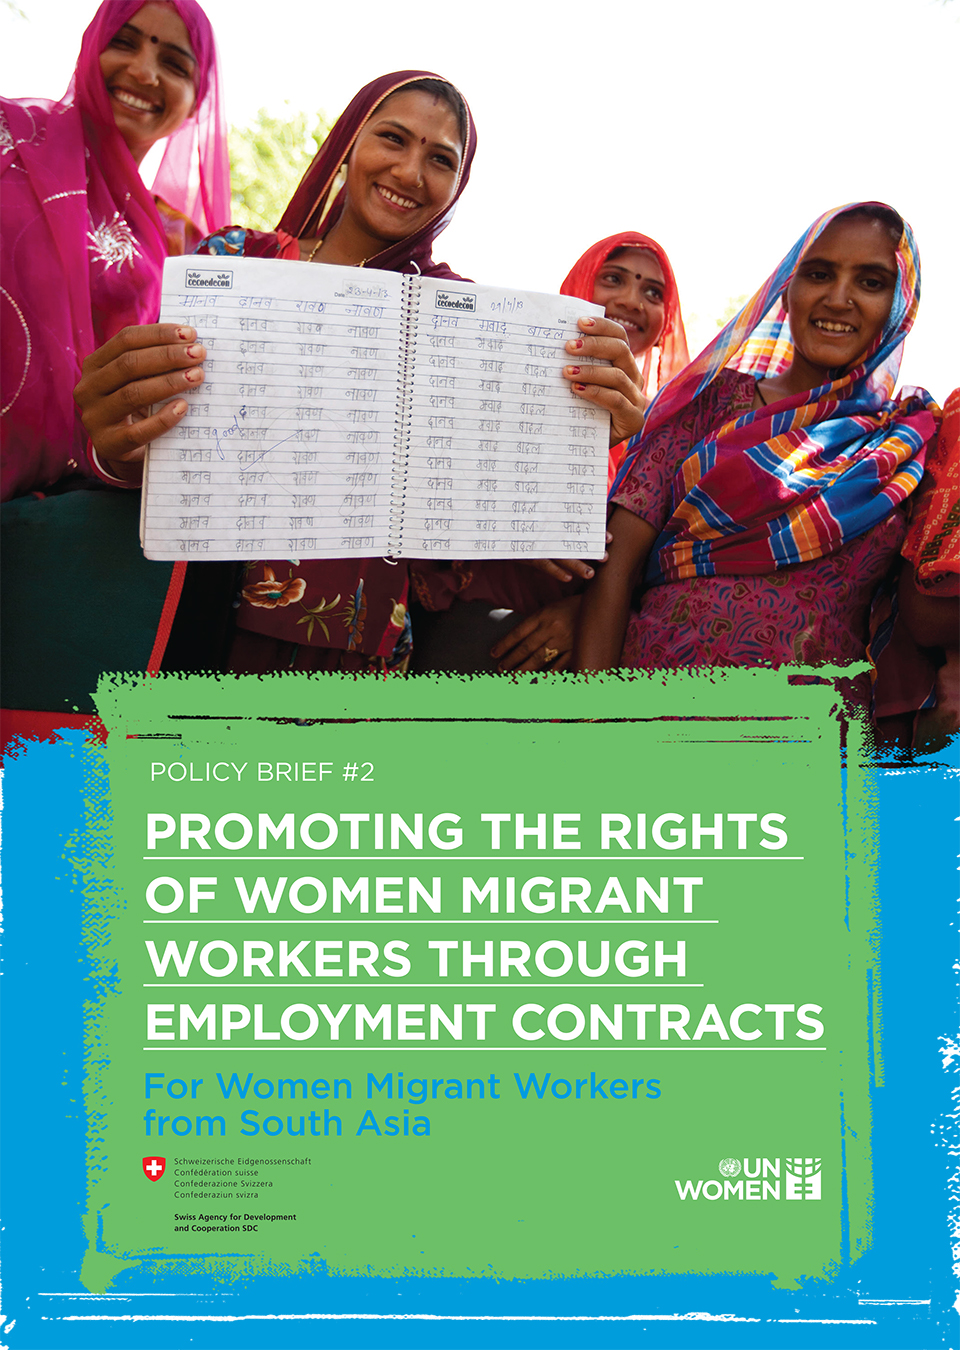 Migrant Workers in South Asia and the Middle East: Promoting the Rights of Women Migrant Workers through Employment Contracts